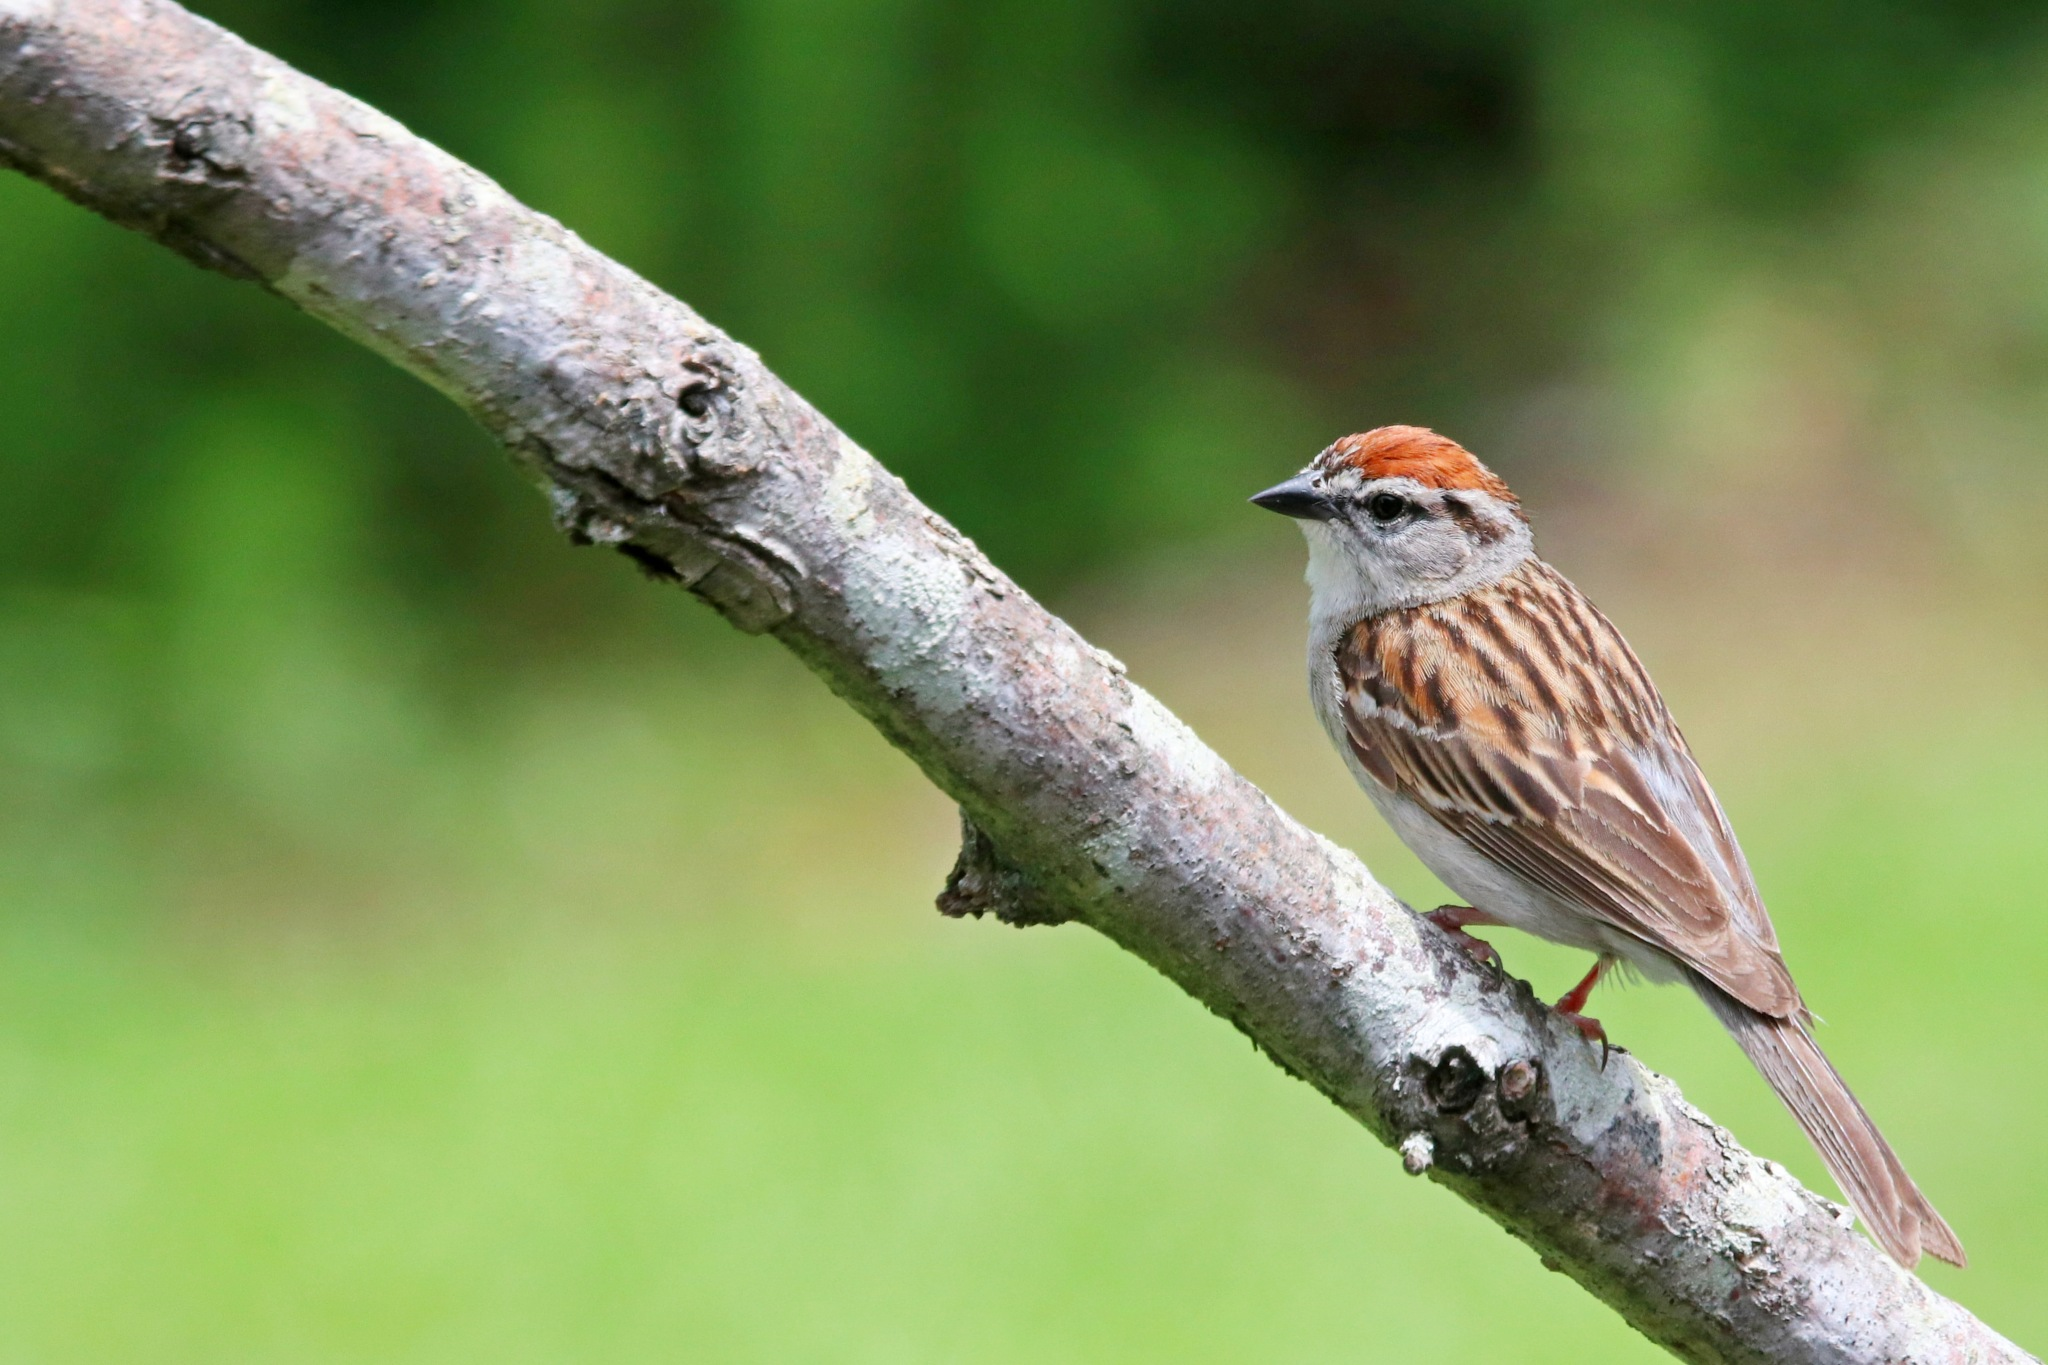 Chiping sparrow #2 by Gregory Kehle